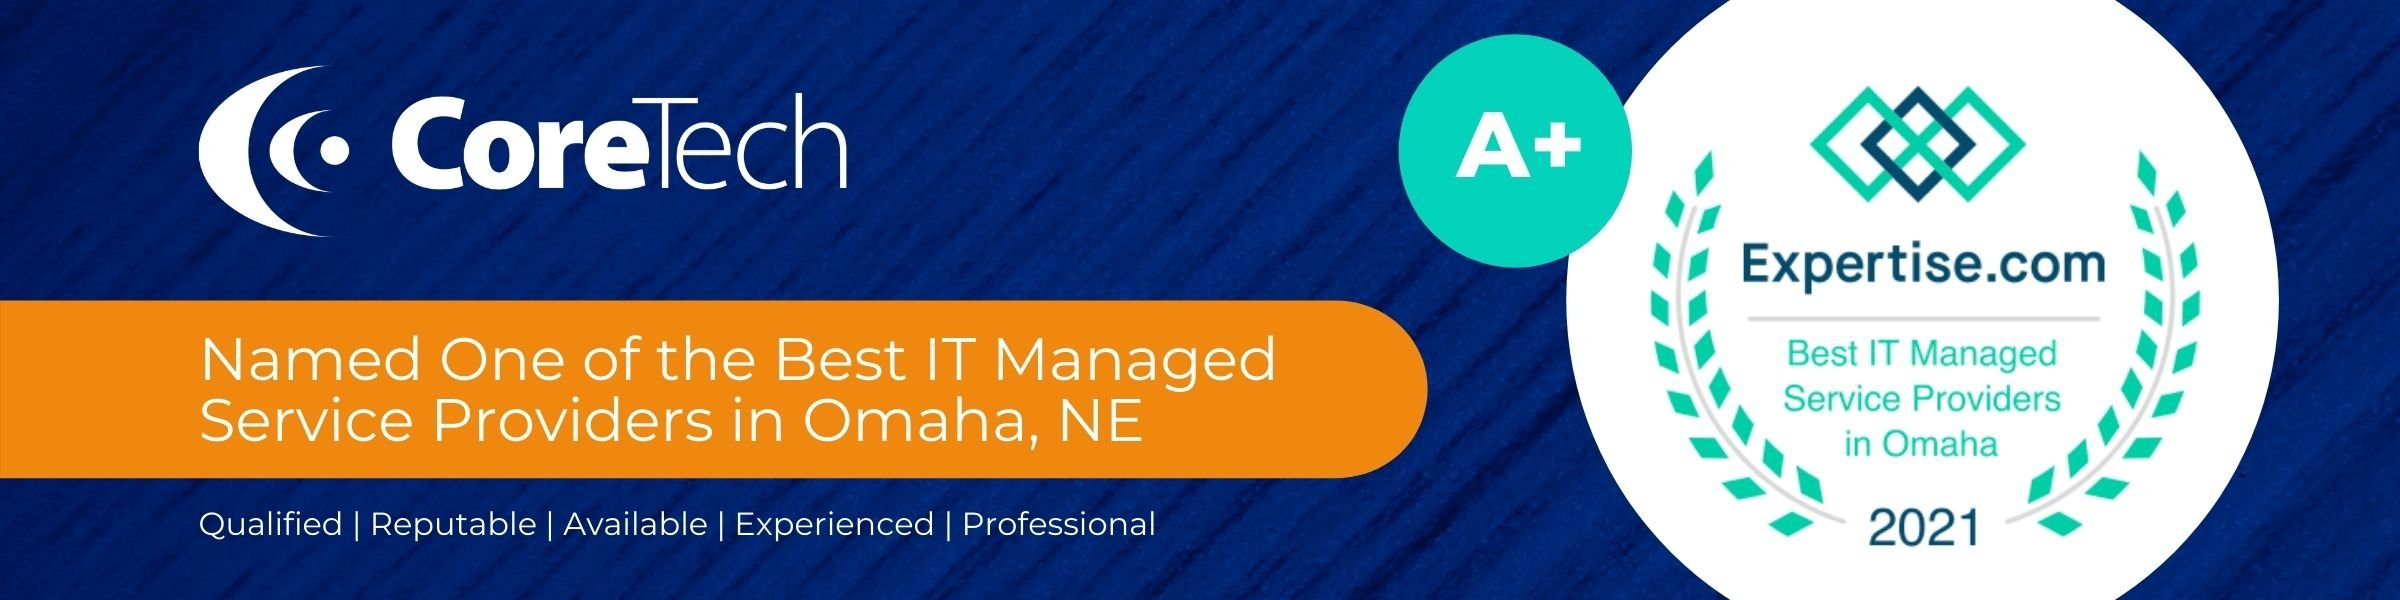 Named One of the Best Managed IT Service Providers in Omaha, NE